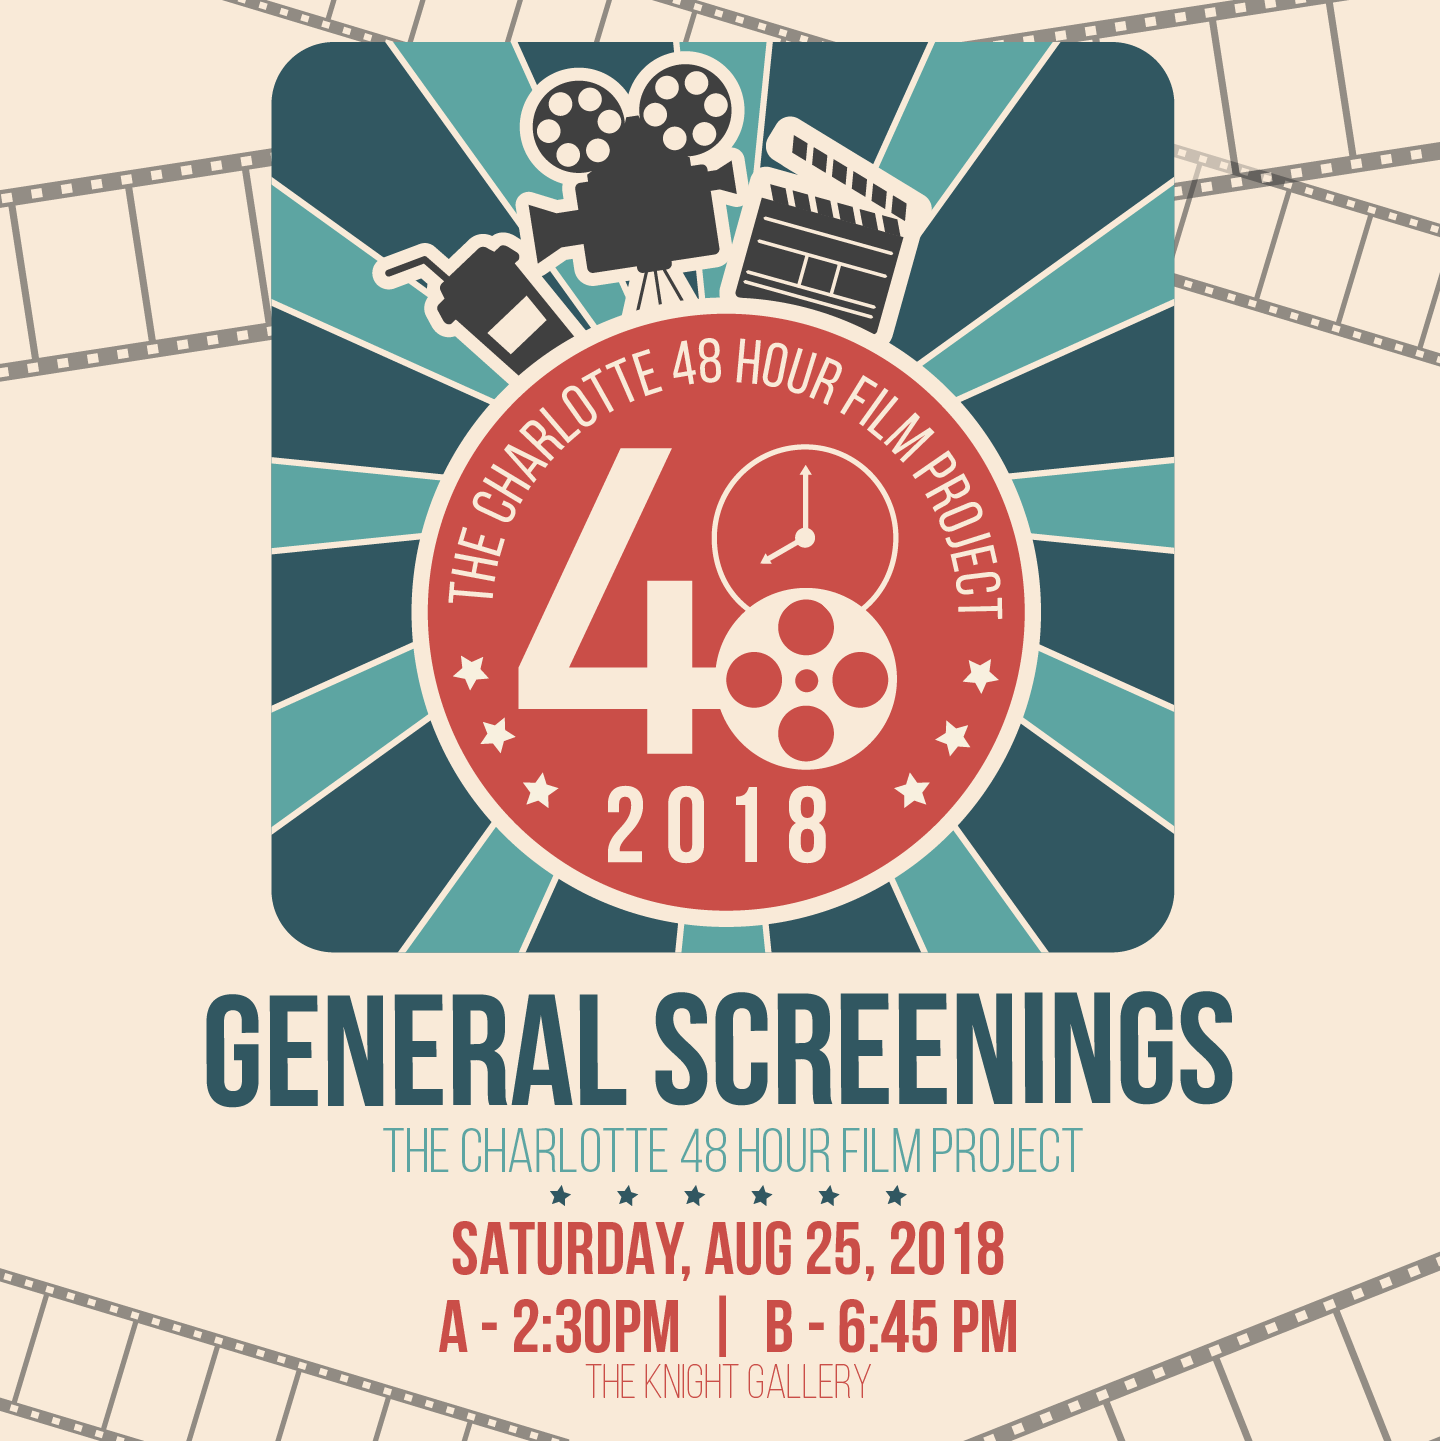 The Charlotte 48 Hour Film Project: General Screenings